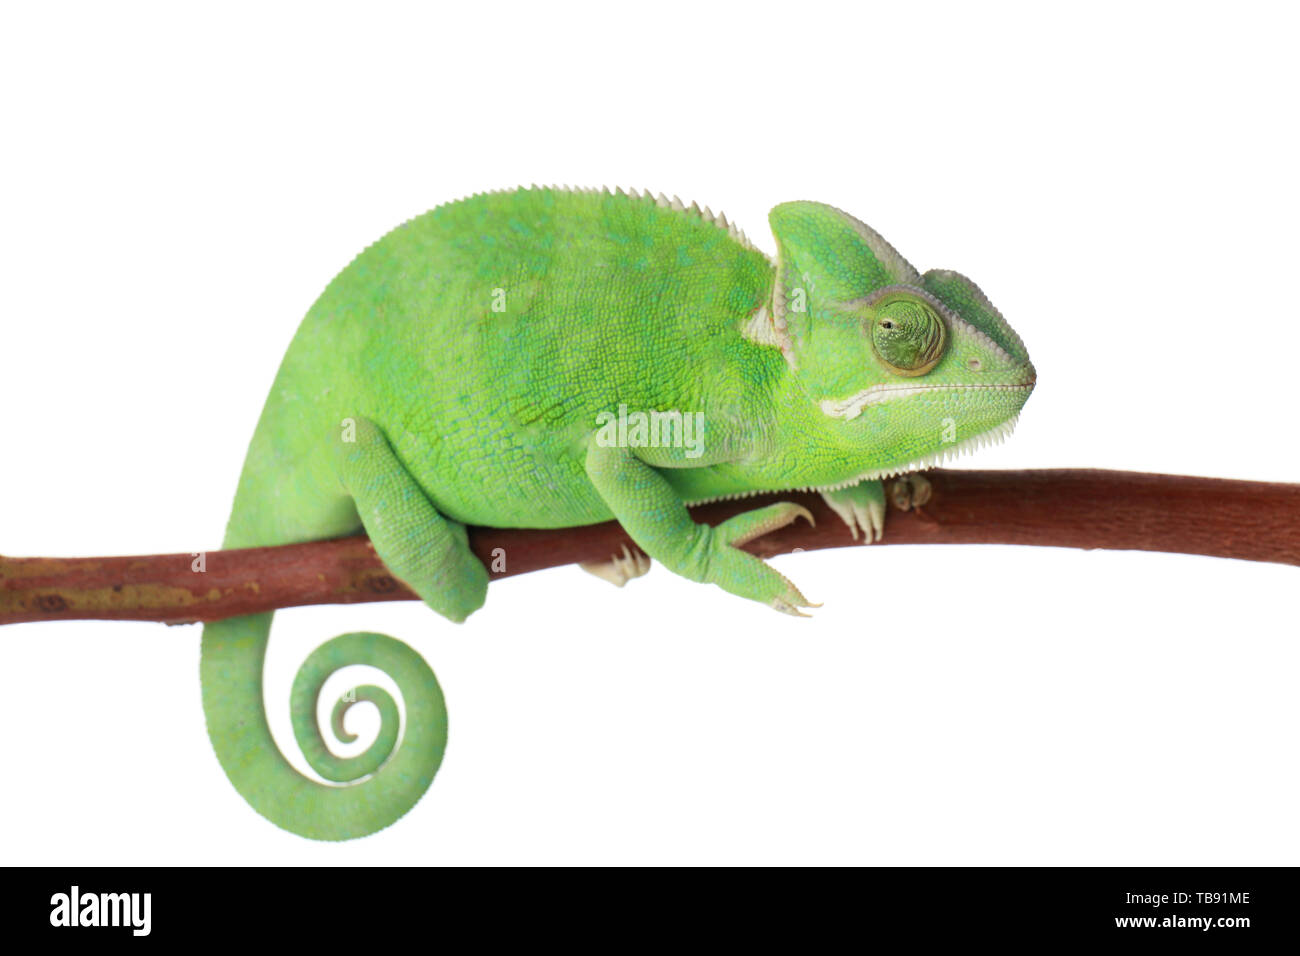 Cute green chameleon on branch against white background - Stock Image